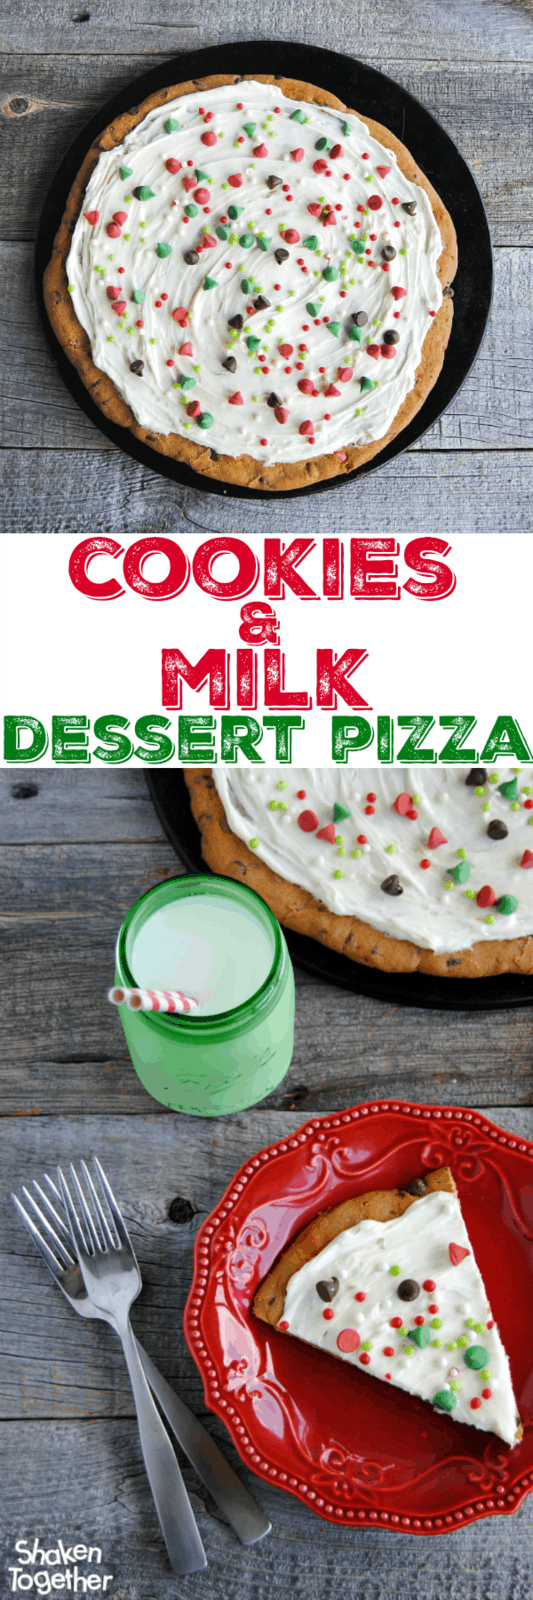 Cookies & Milk Dessert Pizza is such a festive and easy dessert for the holidays! Cookie crust and milk frosting are topped with holiday chips and tons of sprinkles!